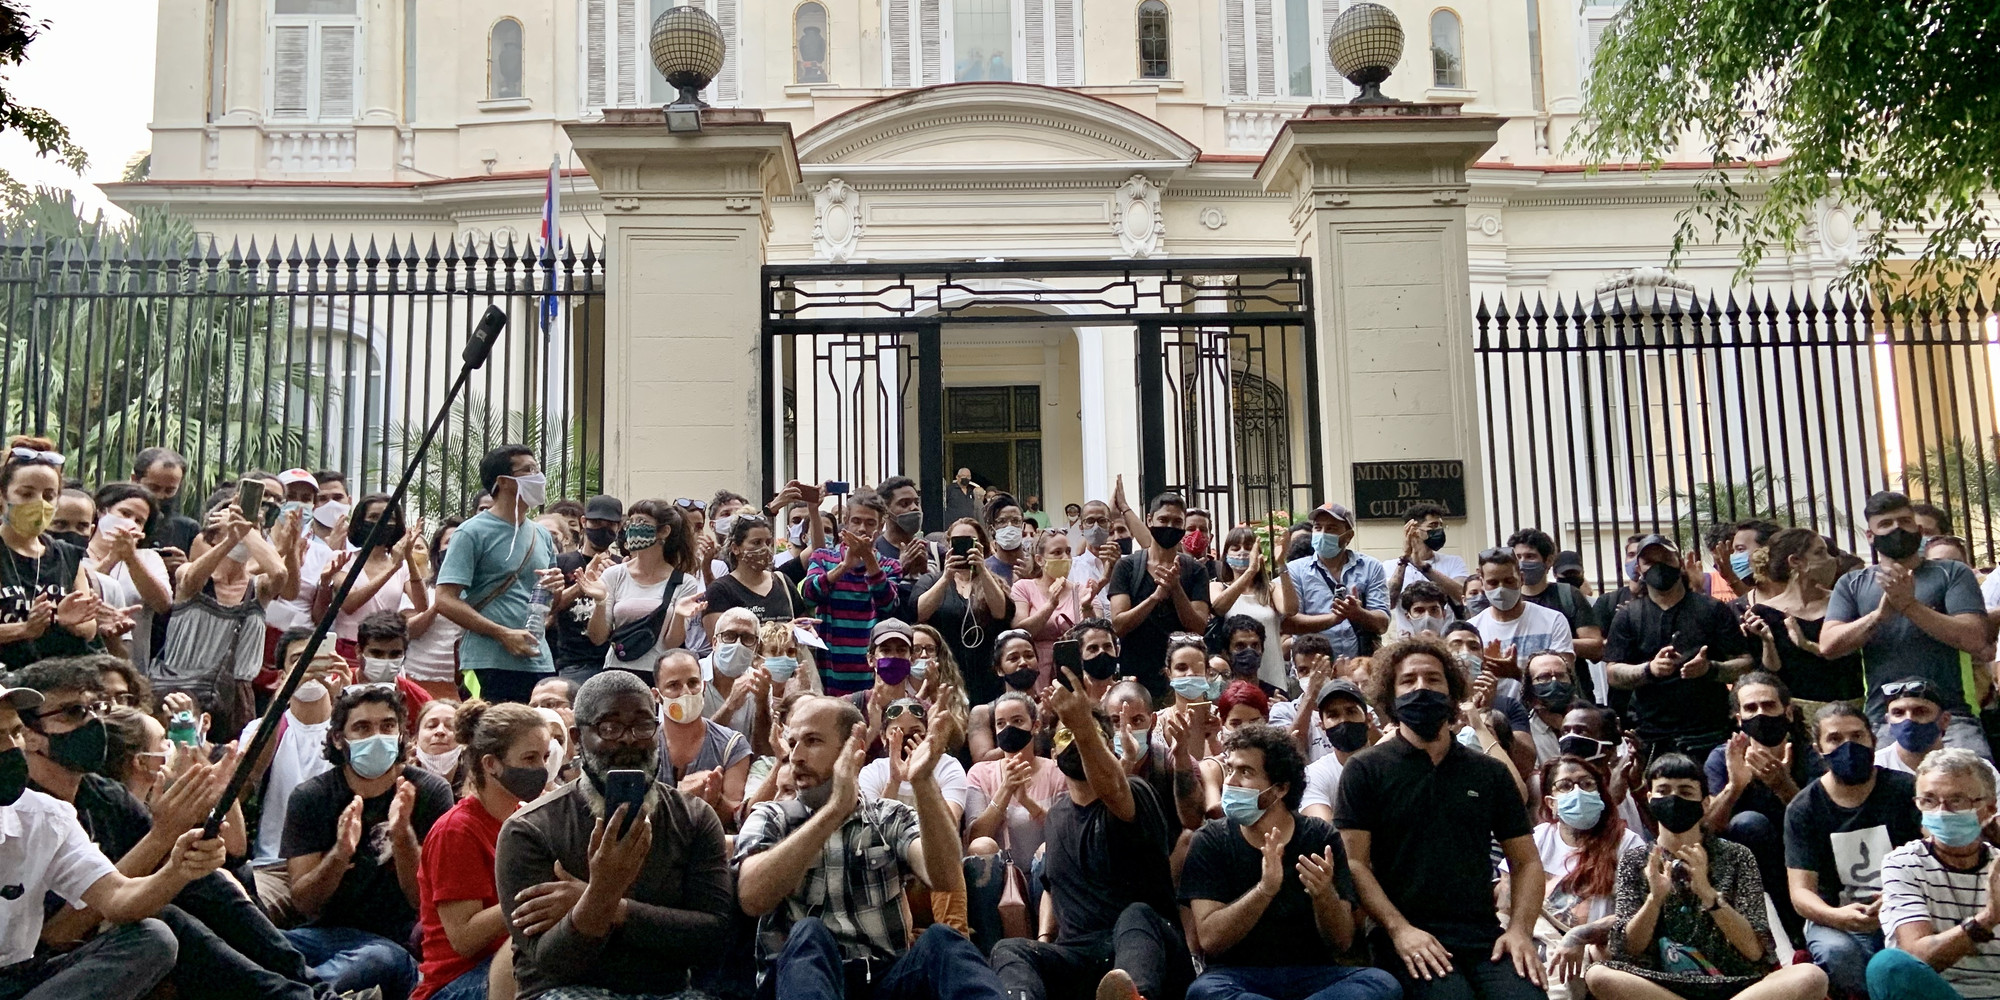 An artists' protest in front of the Ministry of Culture in Havana, November 27, 2020. Photo: Reynier Leyva Novo